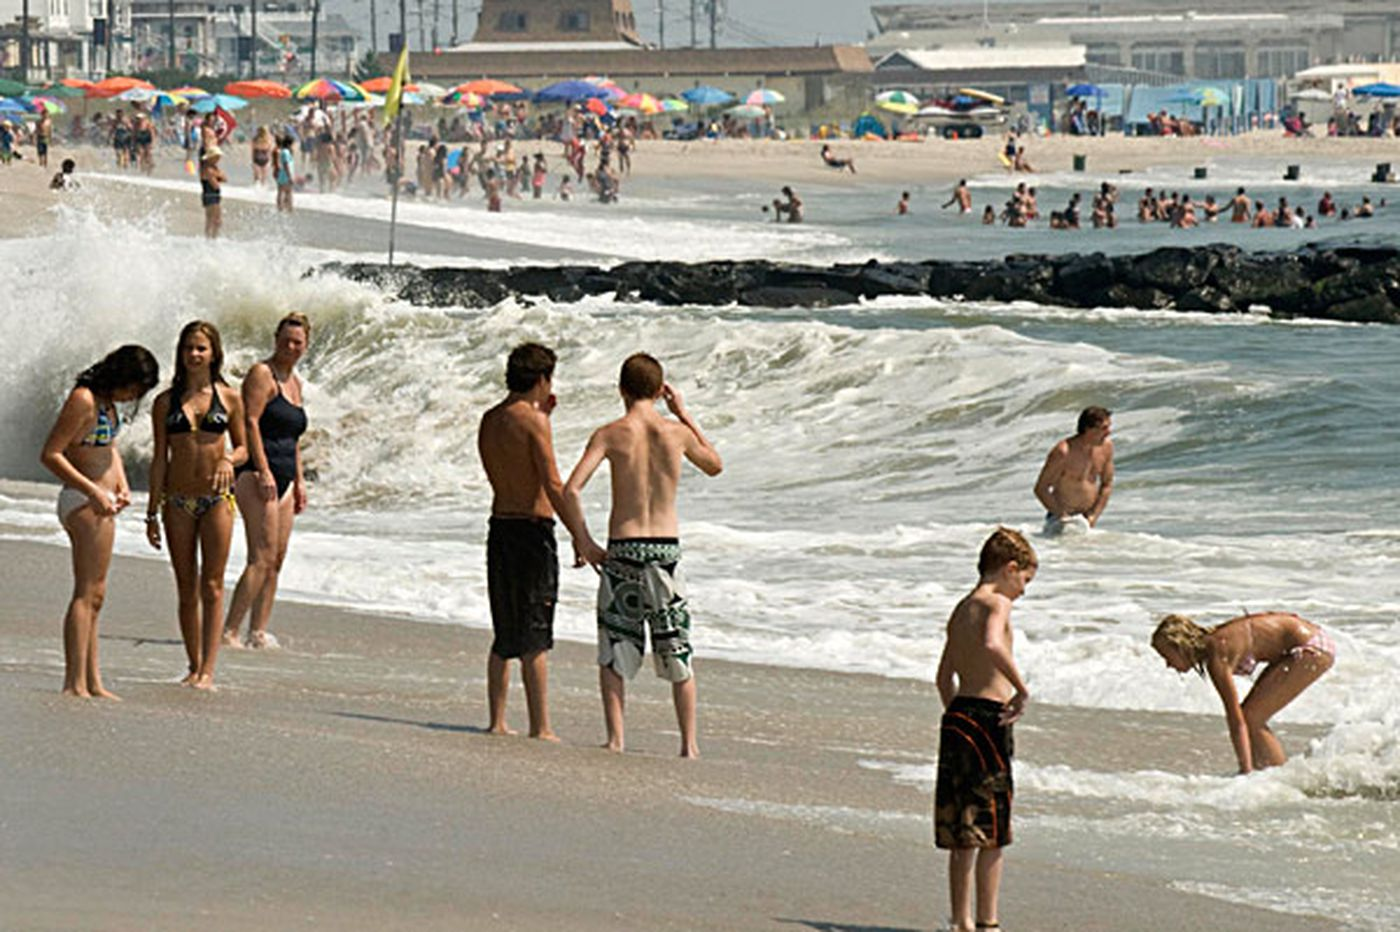 Inquirer Editorial: Shore towns shouldn't be in charge of the beaches